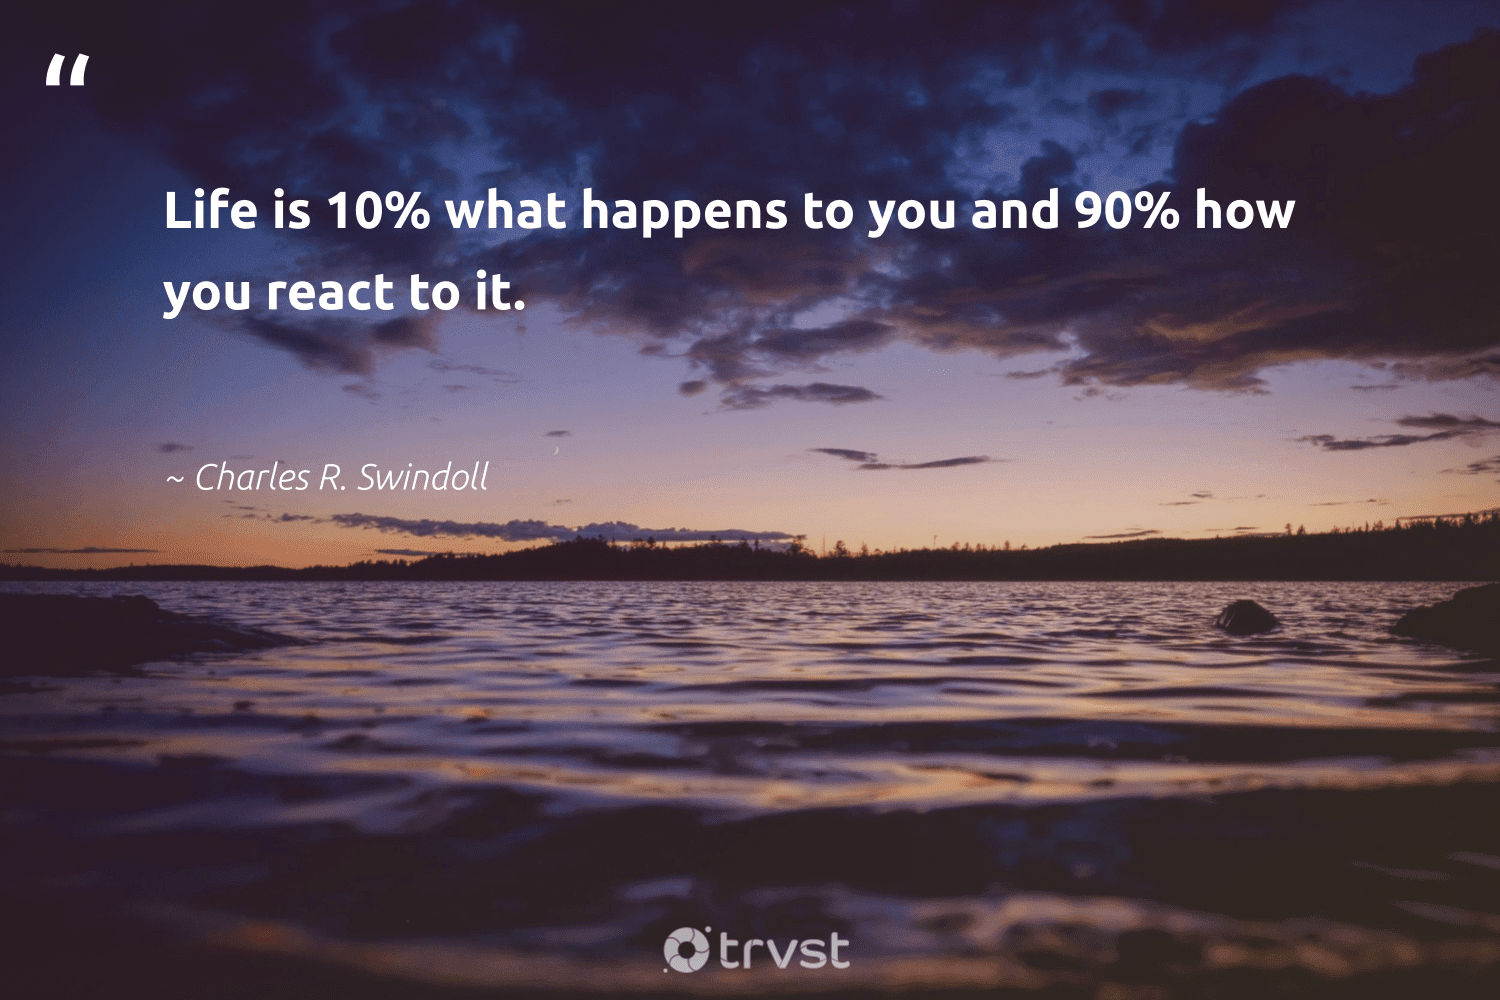 """""""Life is 10% what happens to you and 90% how you react to it. """"  - Charles R. Swindoll #trvst #quotes #mindset #changetheworld #changemakers #collectiveaction #begreat #dogood #nevergiveup #dosomething #togetherwecan #socialchange"""